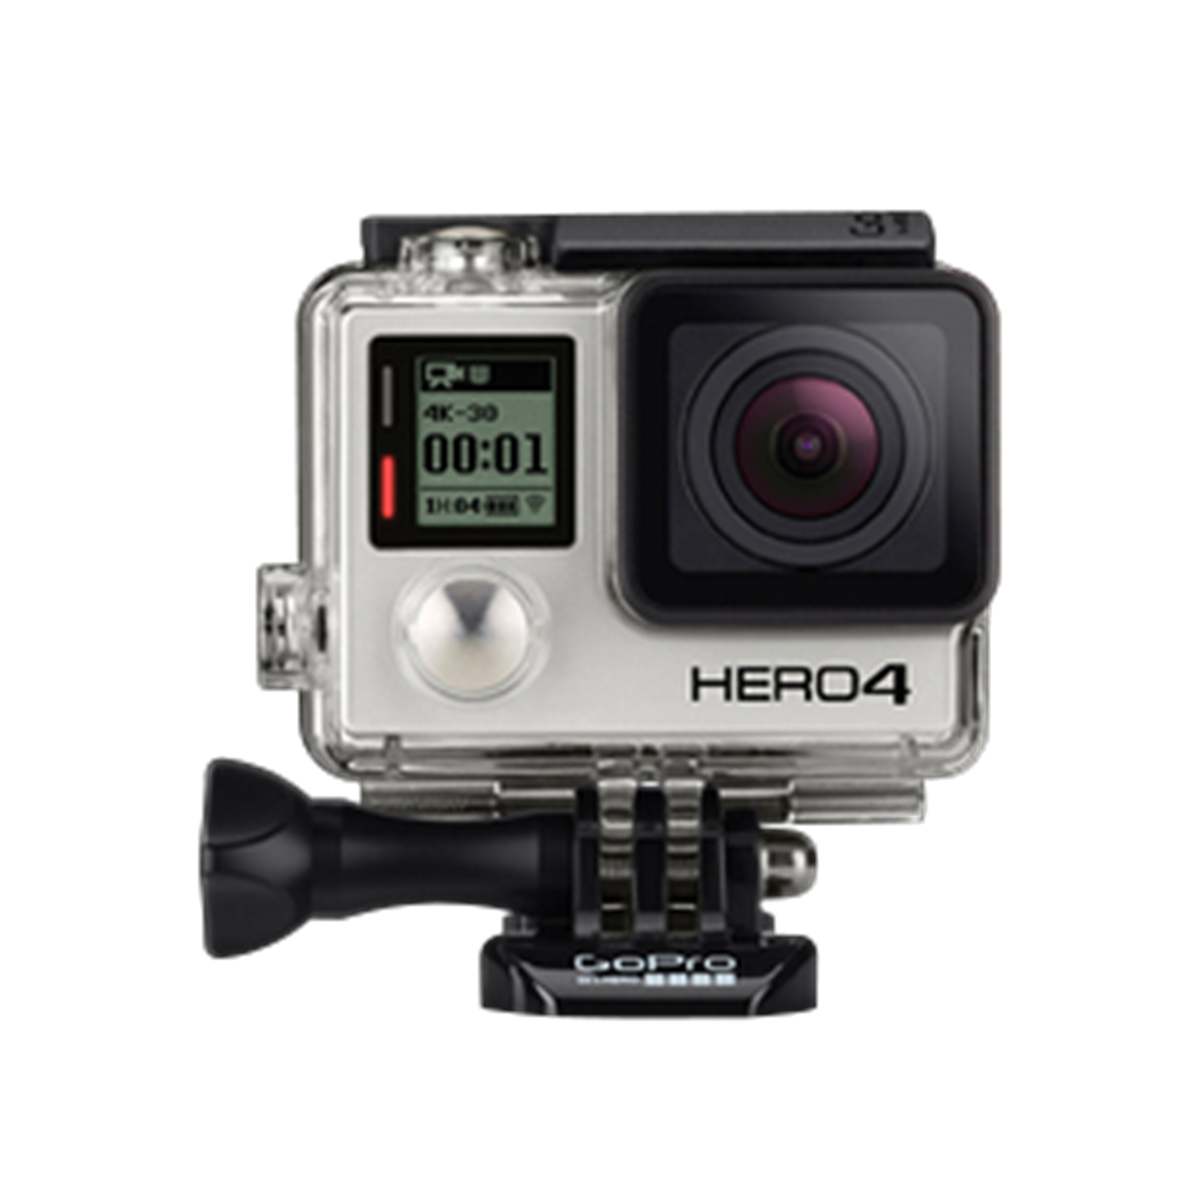 Upcoming GoPro Hero4 firmware will enable new photo and video ...